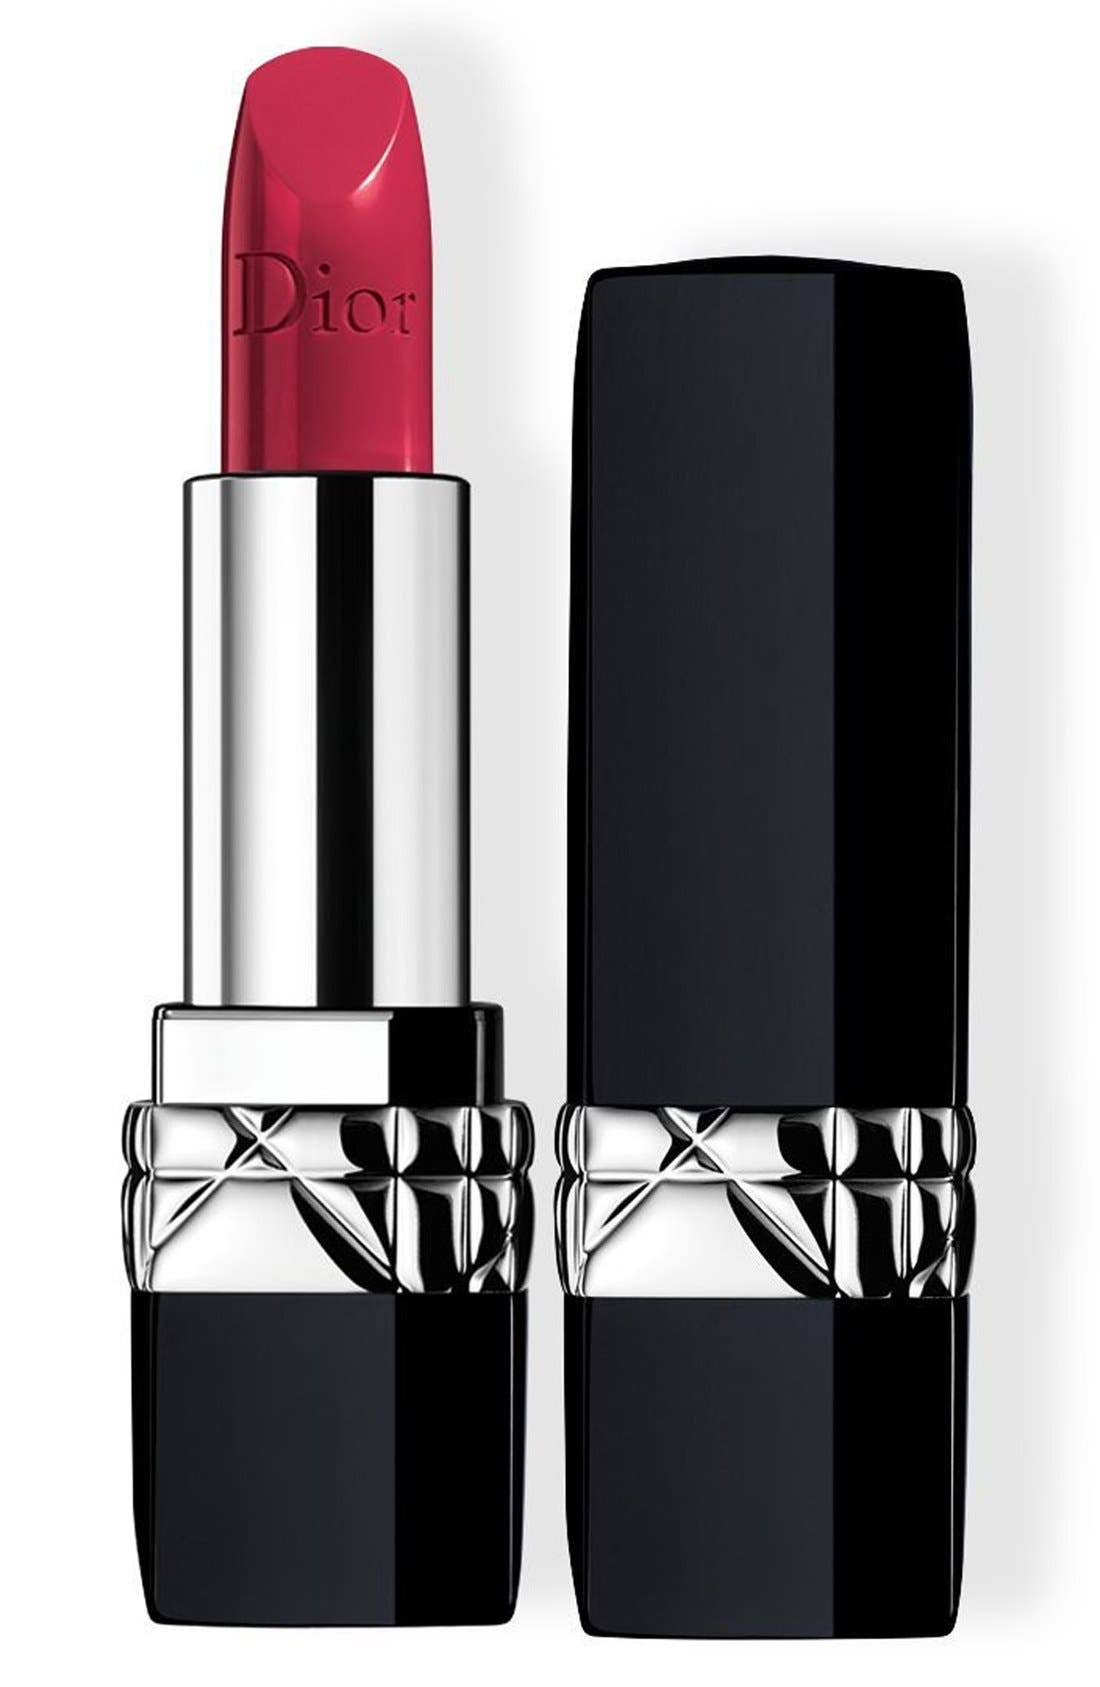 Dior Couture Color Rouge Dior Lipstick - 776 Soiree A Rio